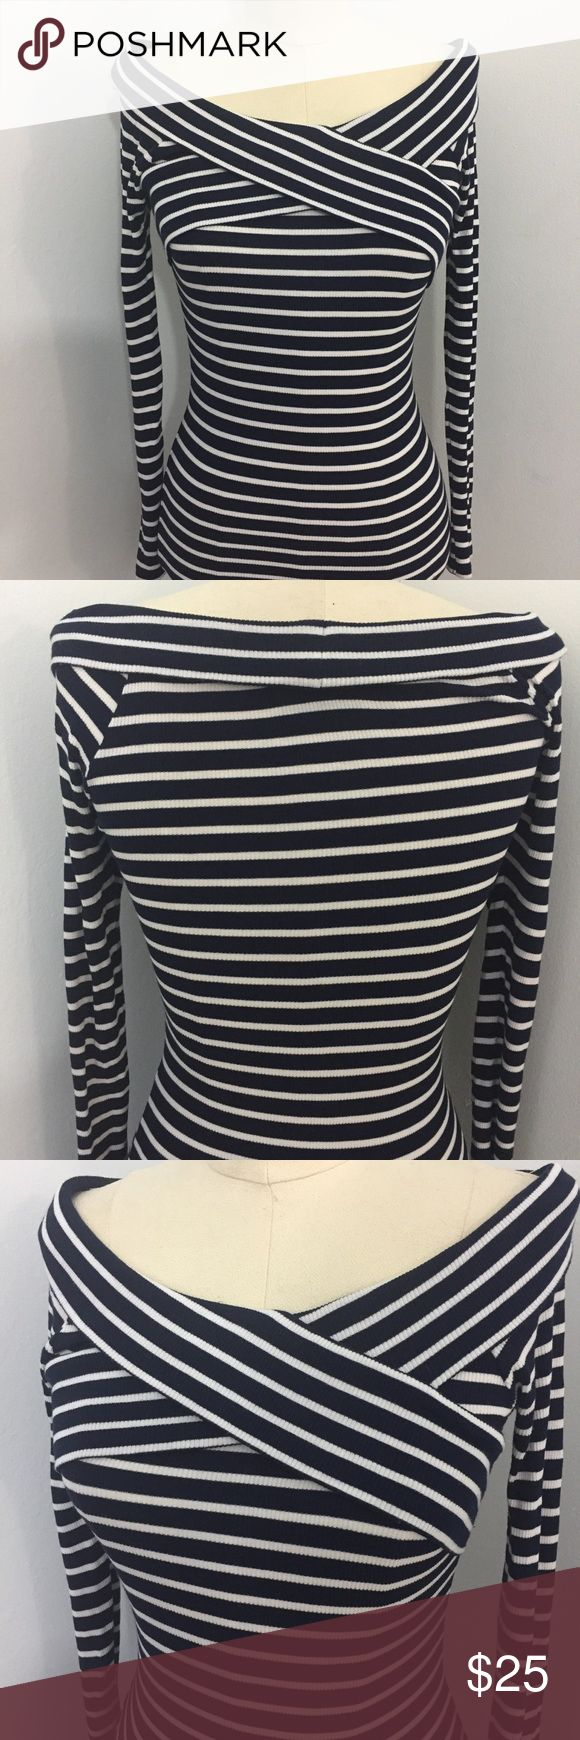 Topshop Super Tight Shawl Collar Knit Dress This cute dress is navy blue and white striped. It is a red T-shirt dress. Super tight with a shawl collar. Excellent preowned condition. Topshop PETITE Dresses Mini